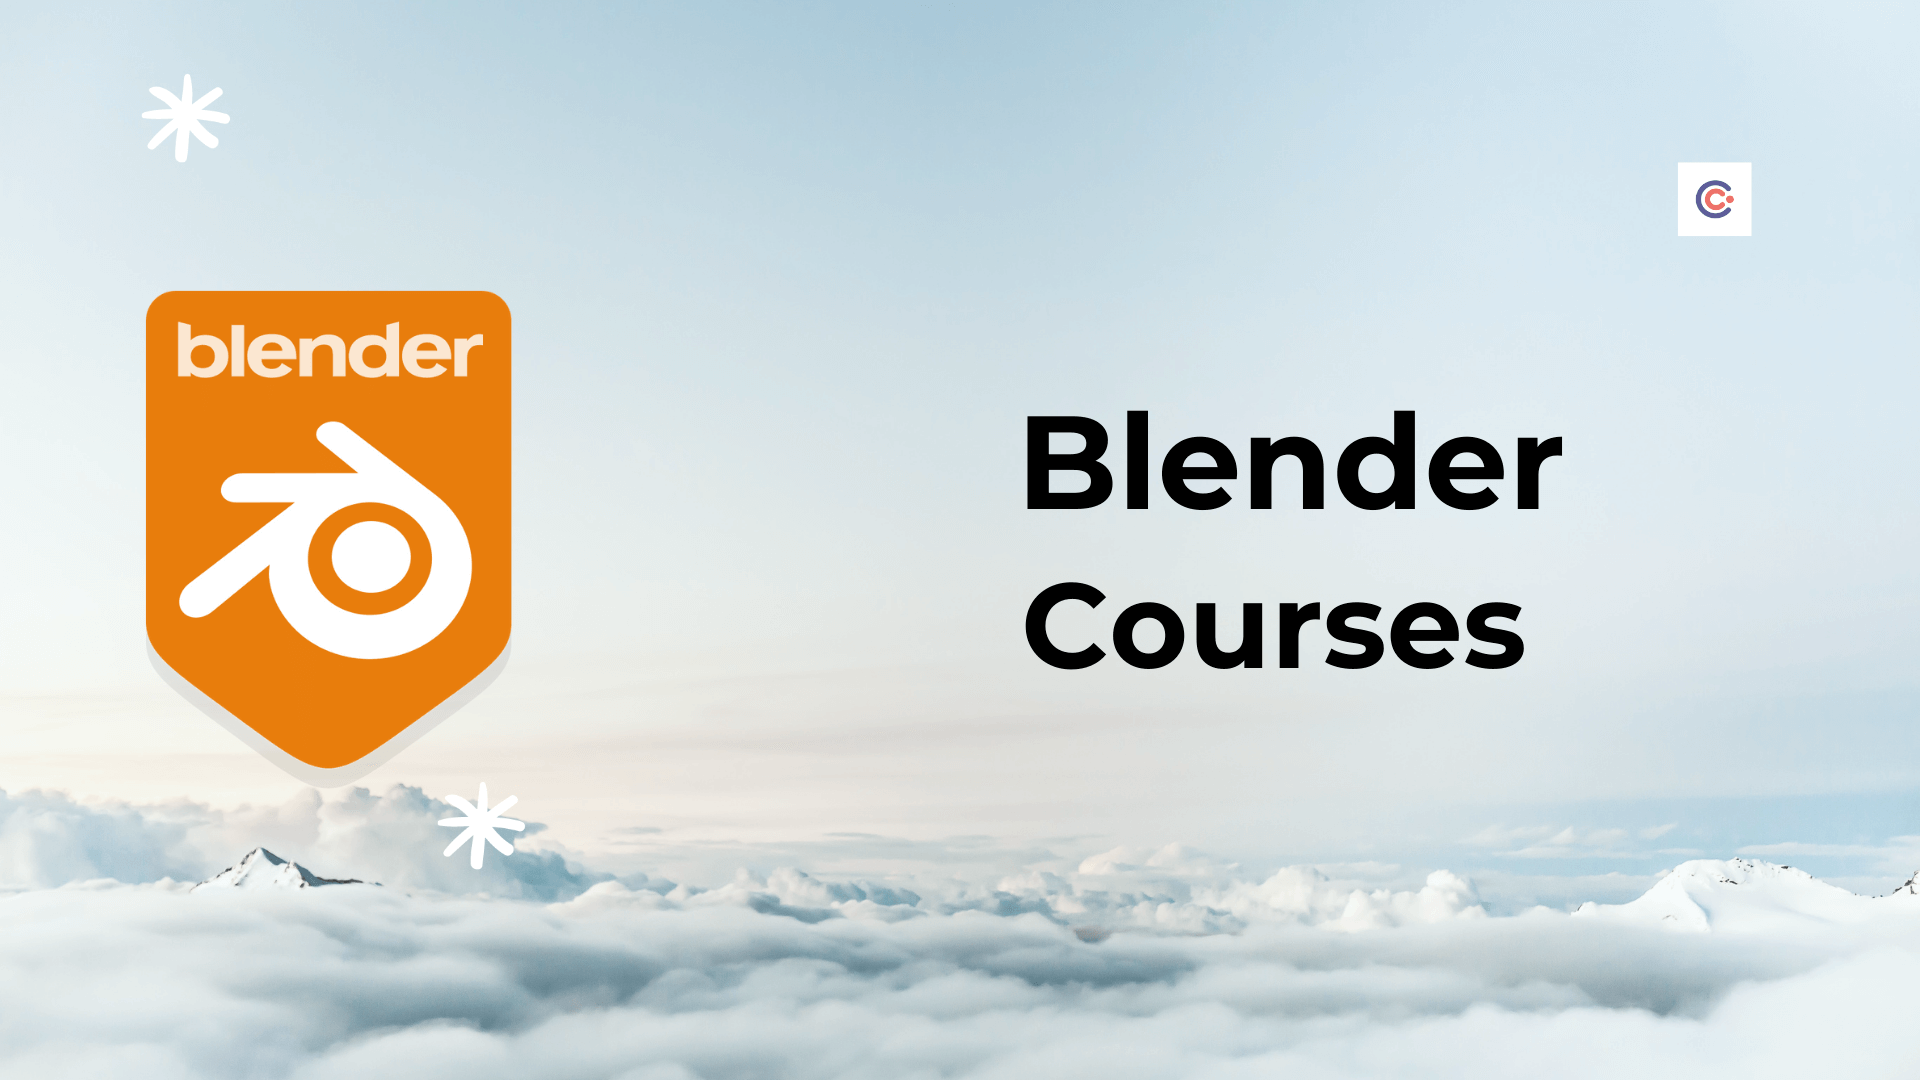 10 Best Blender 3D Tutorials & Courses - Learn Blender 3D Online